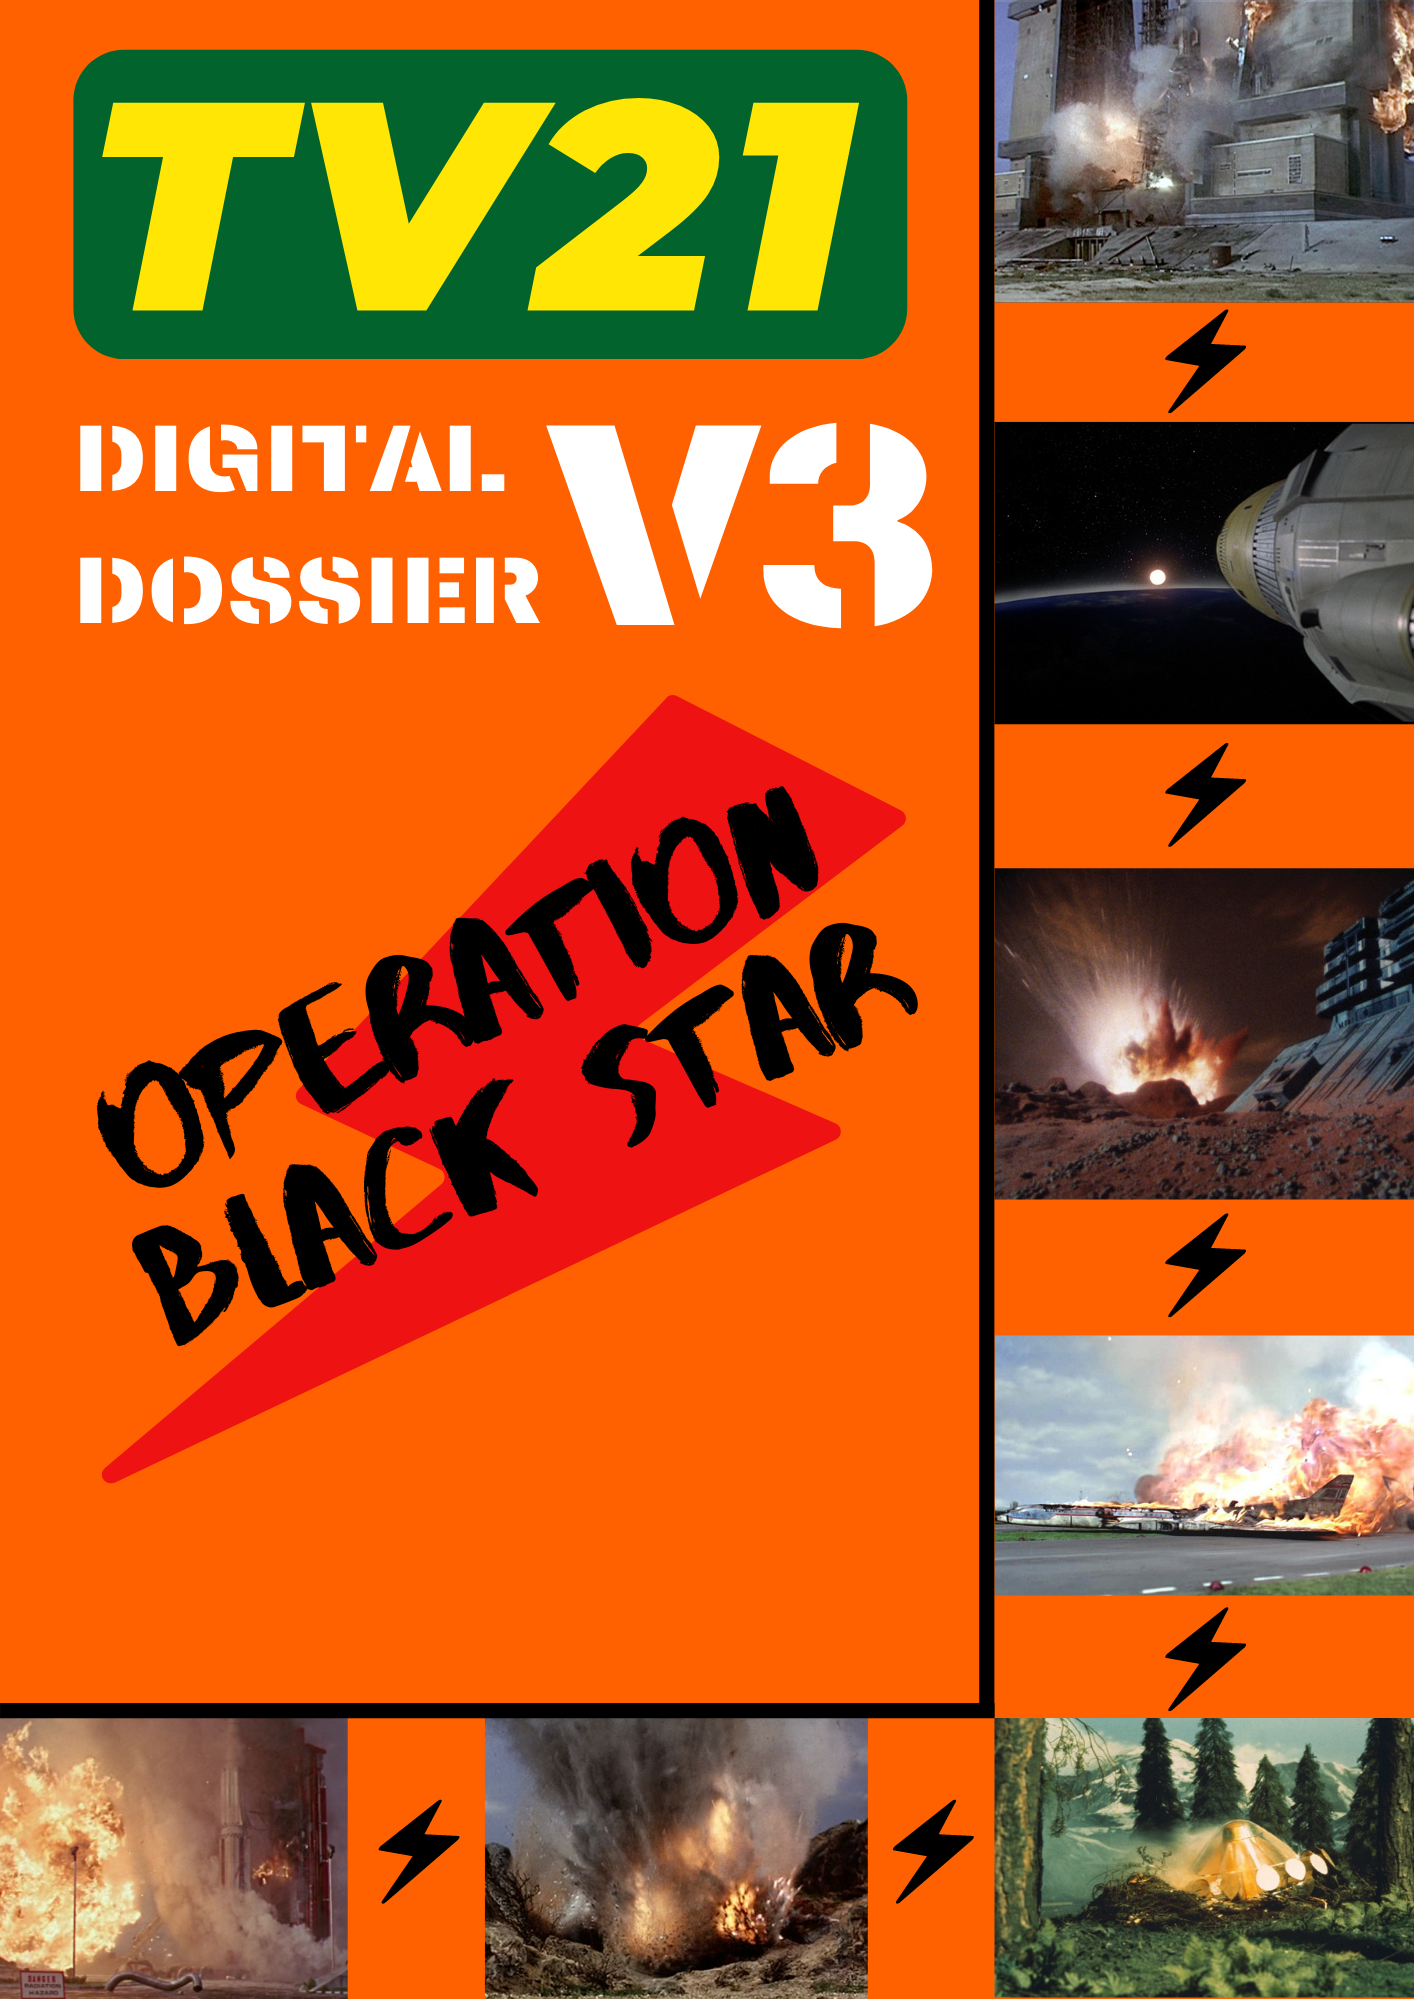 TV21 Digitial Dossier - V3_ Operation Black Star